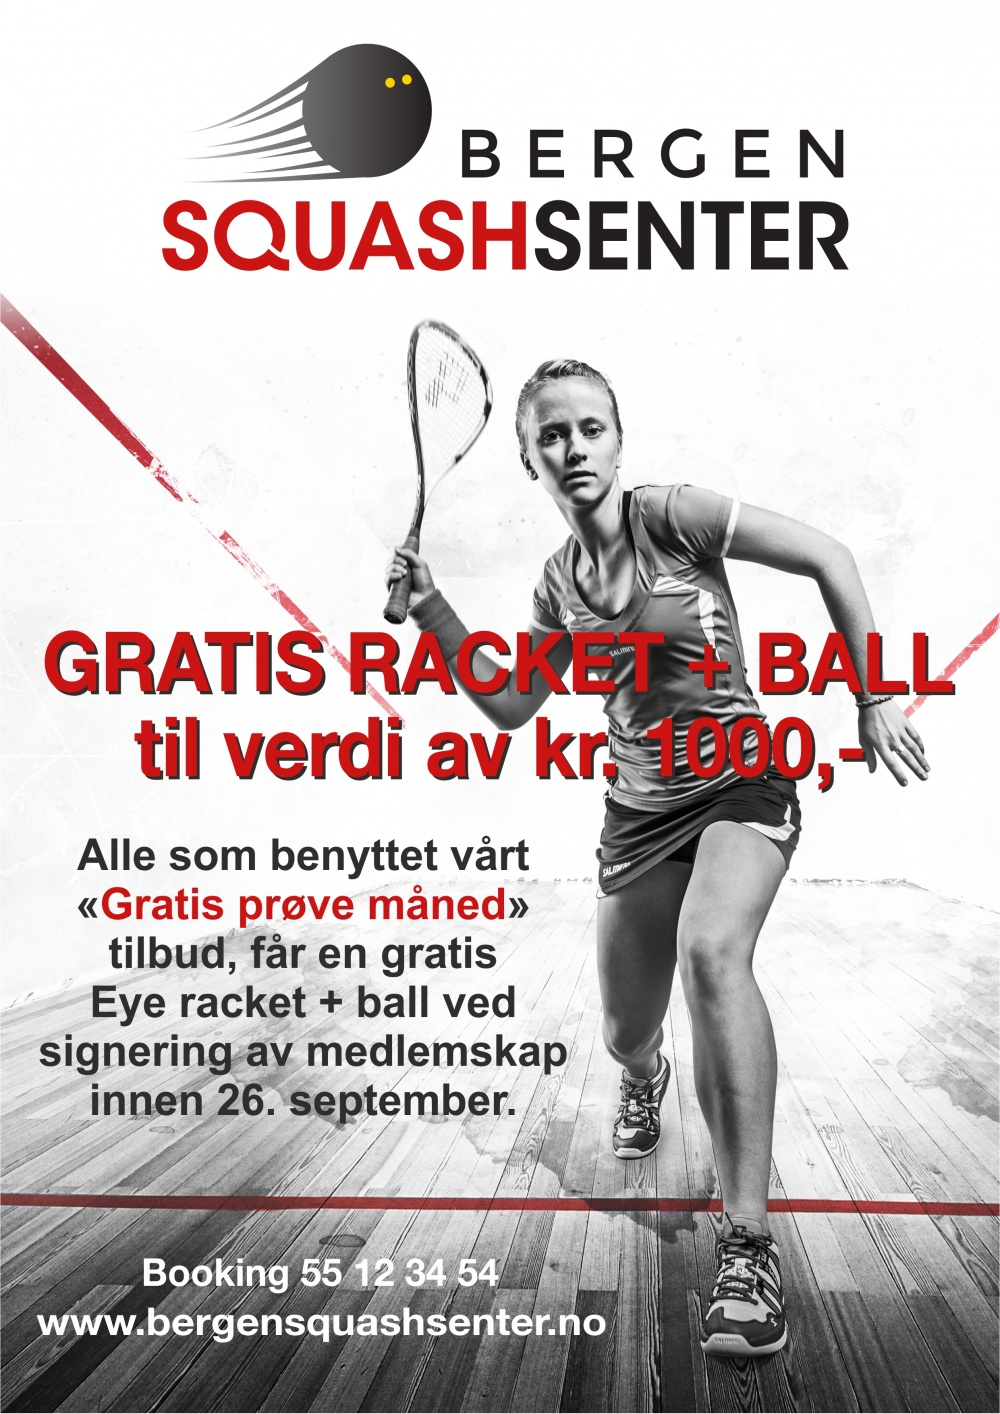 GRATIS RACKET + BALL